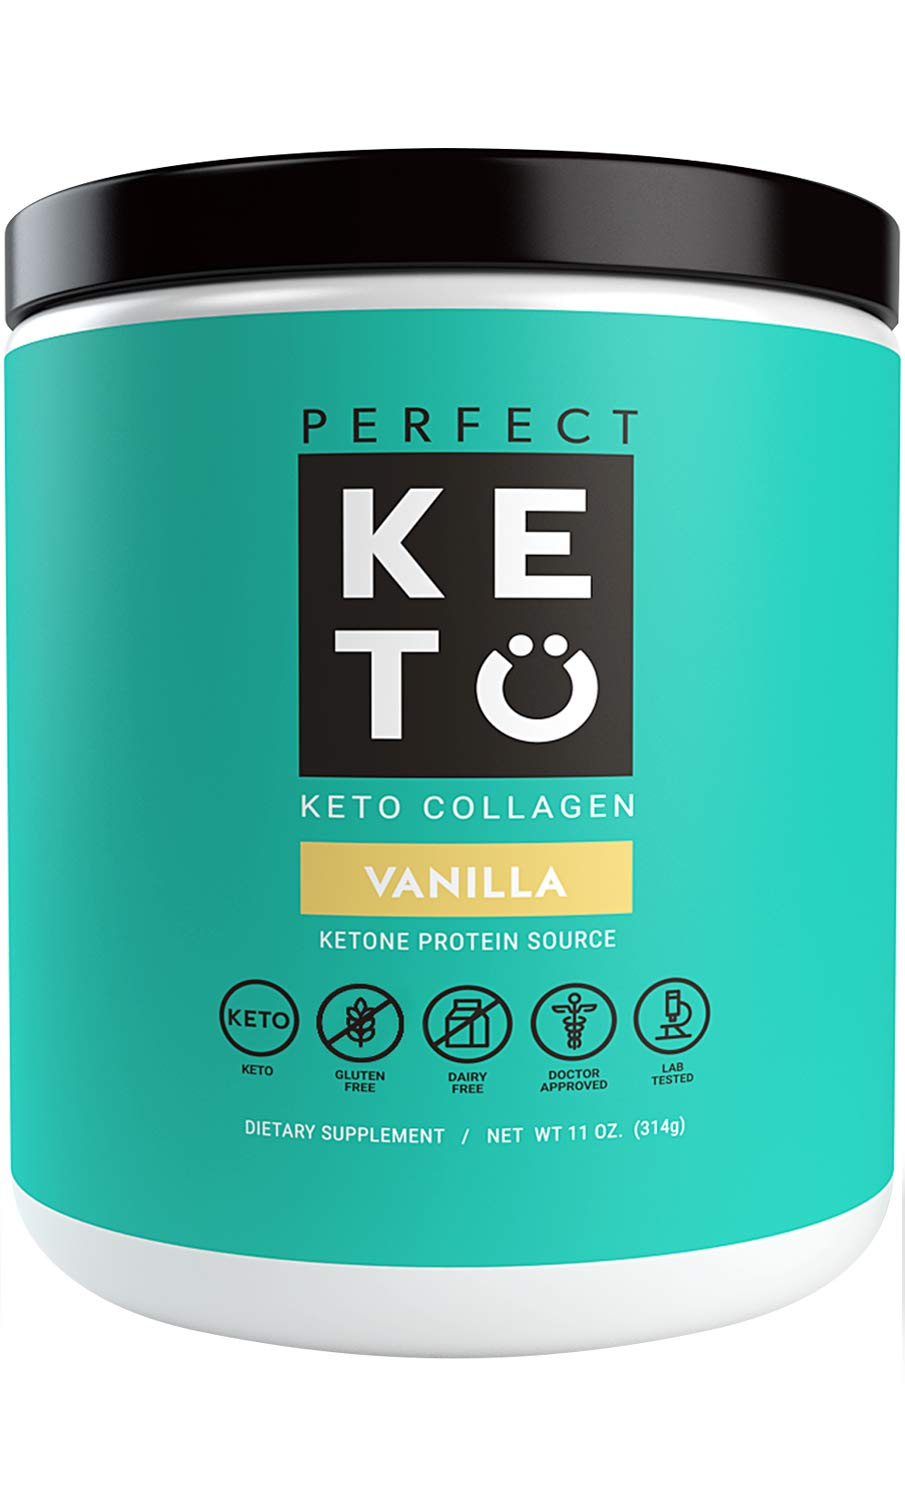 Perfect Keto Collagen Peptides Vanilla: Grass Fed Low Carb Collagen Powder Supplement with MCT Oil Powder - Best as Keto Drink Creamer or Added to Ketogenic Diet Snacks. Paleo & Gluten Free by Perfect Keto